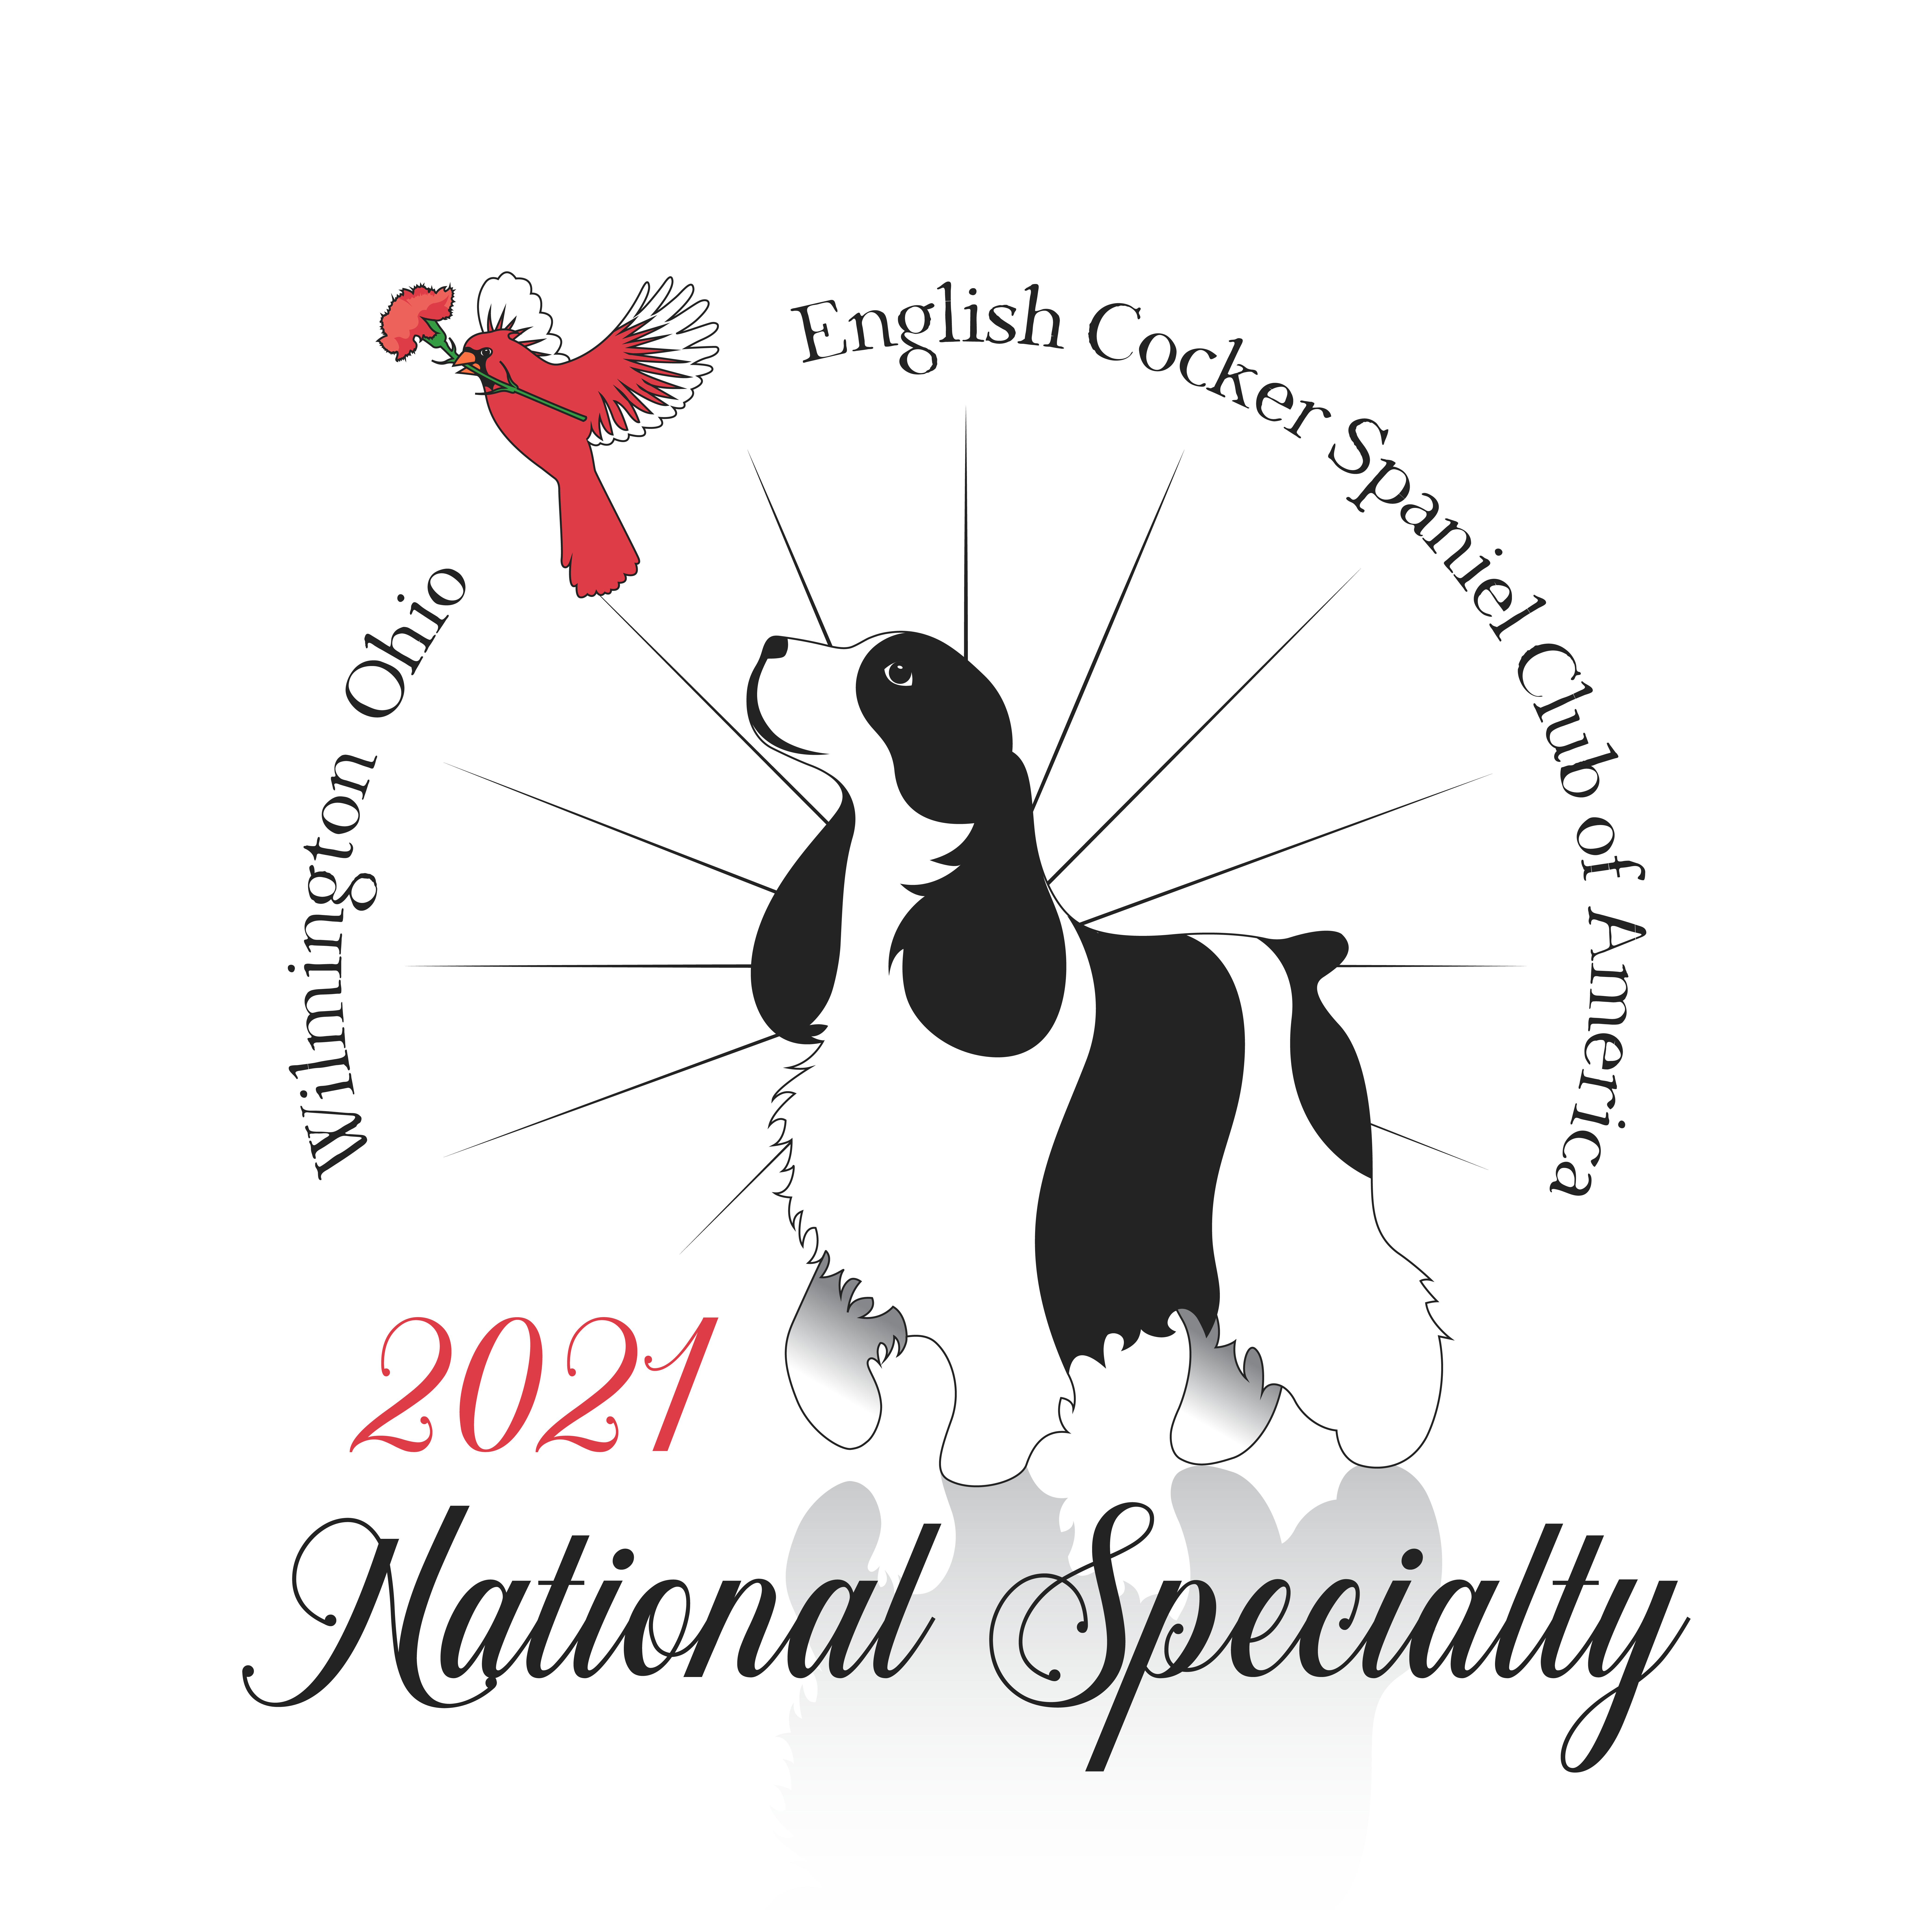 ECSCA National Specialty 2021 Logo PDF Transparent